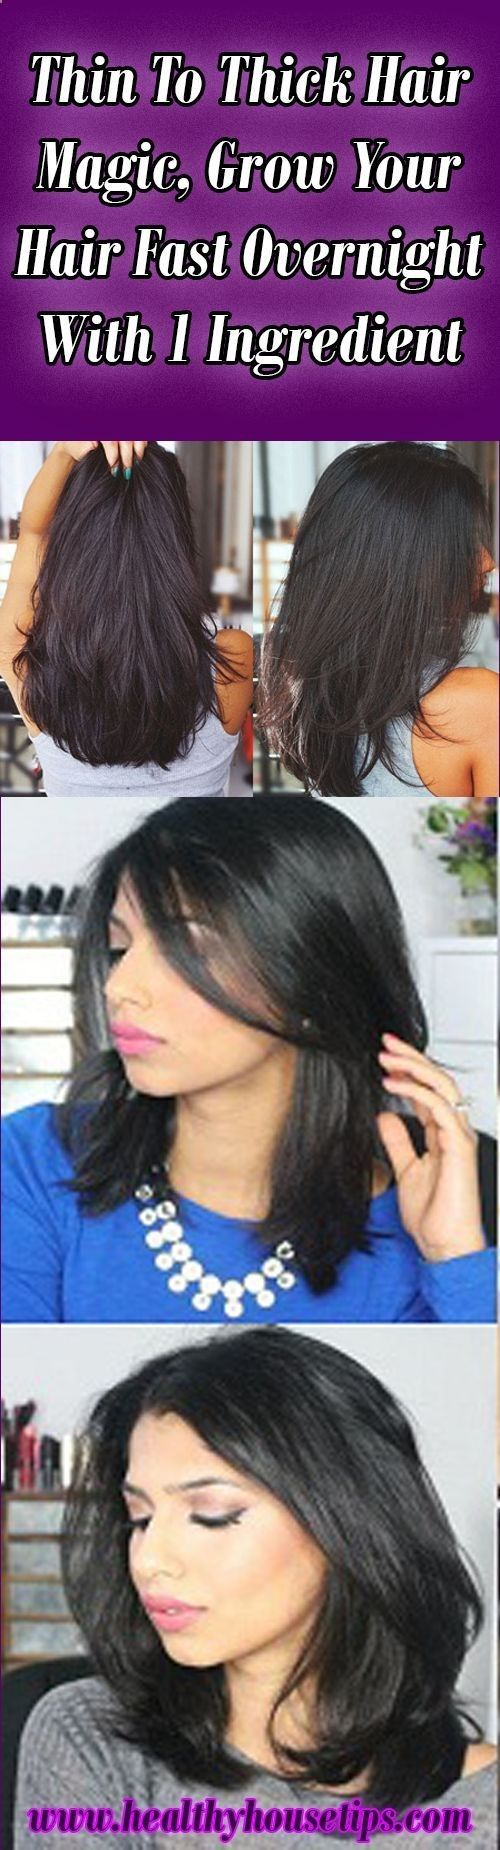 Skinny To Thick Hair Magic, Develop Your Hair Quick In a single day With 1 Ingredient